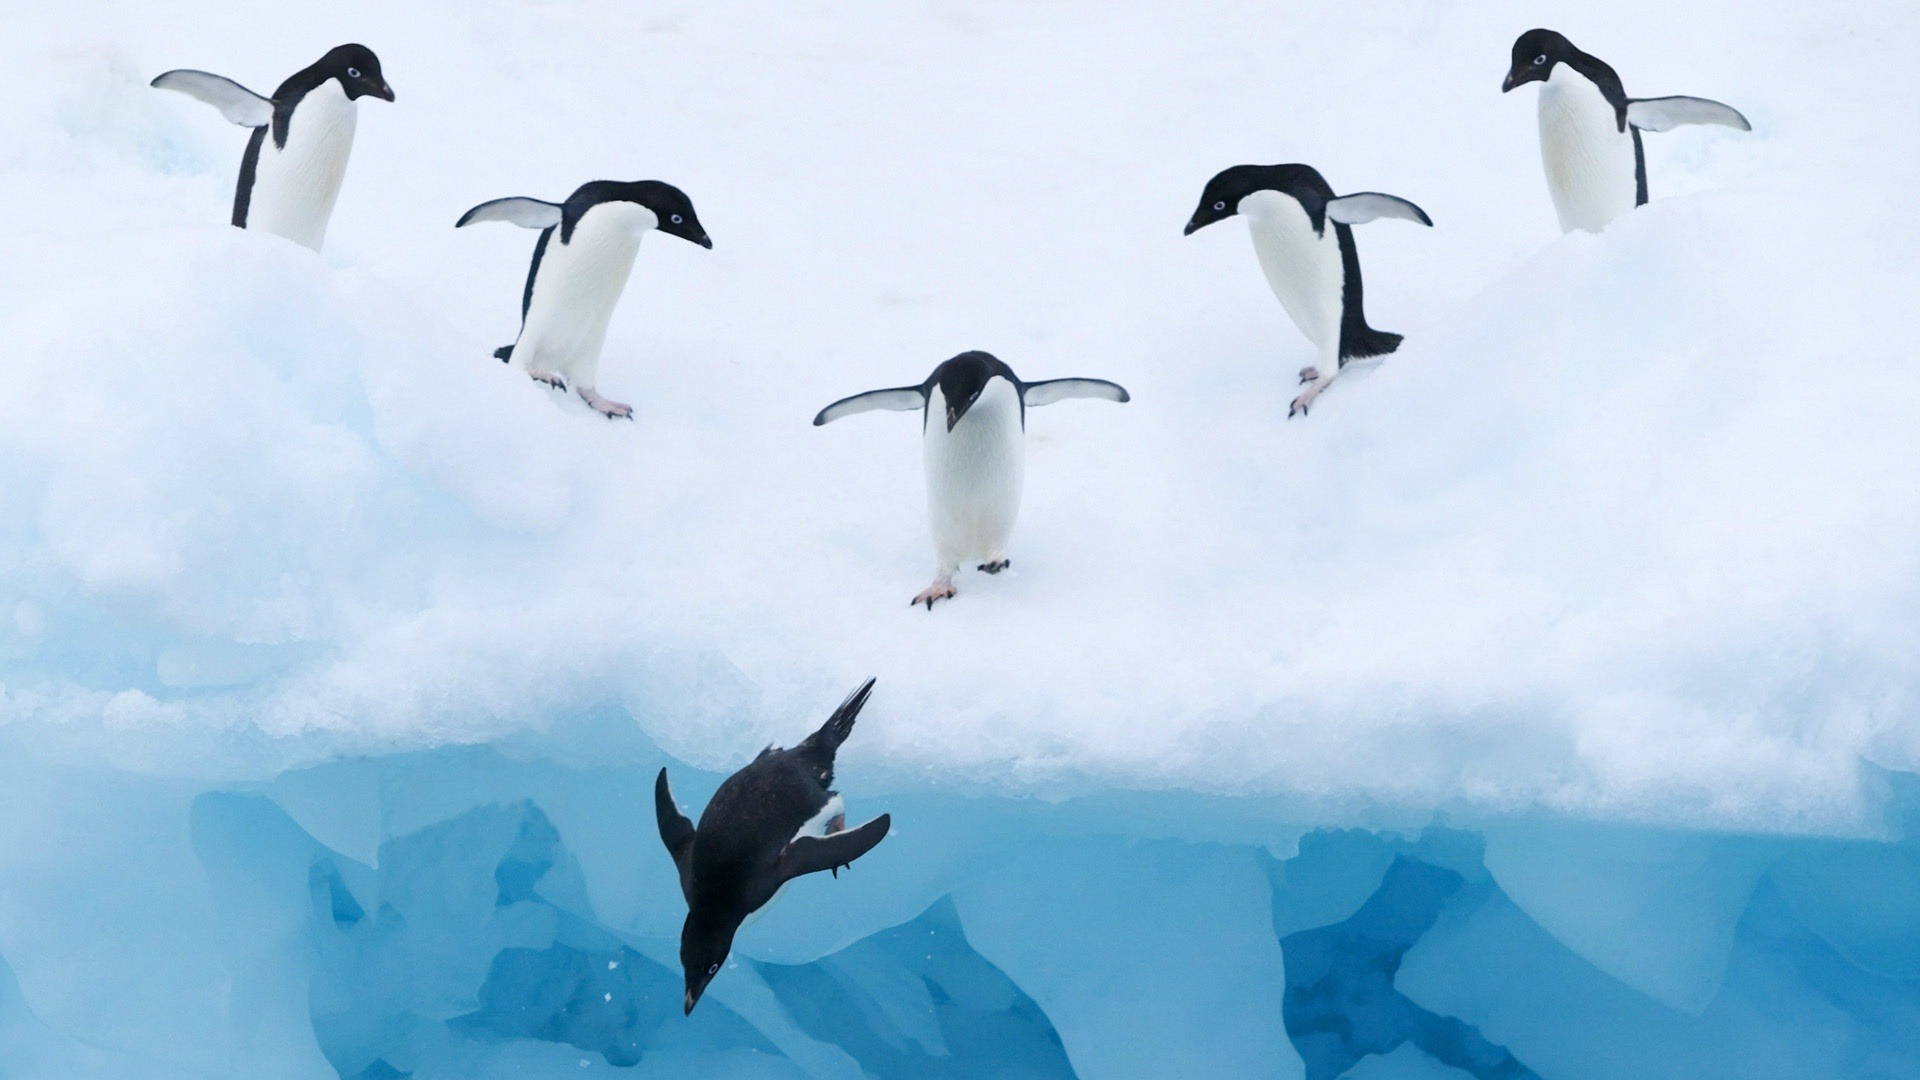 Penguins-Ice-Snow-Water